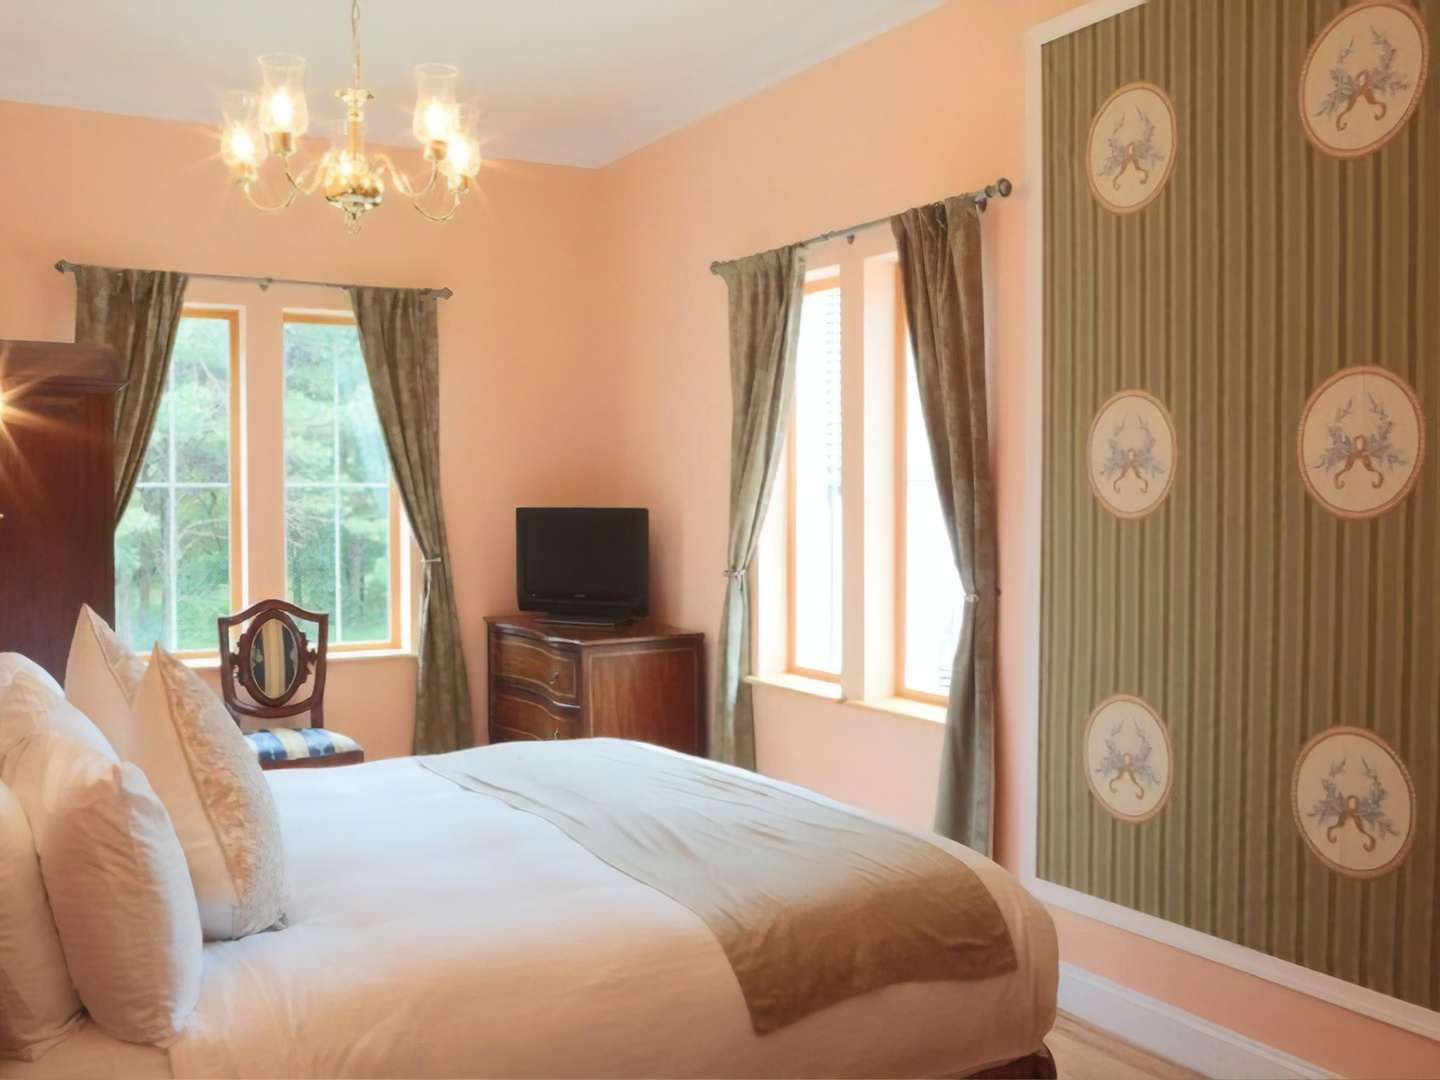 A bedroom with a large bed sitting in a room at Wedmore Place.